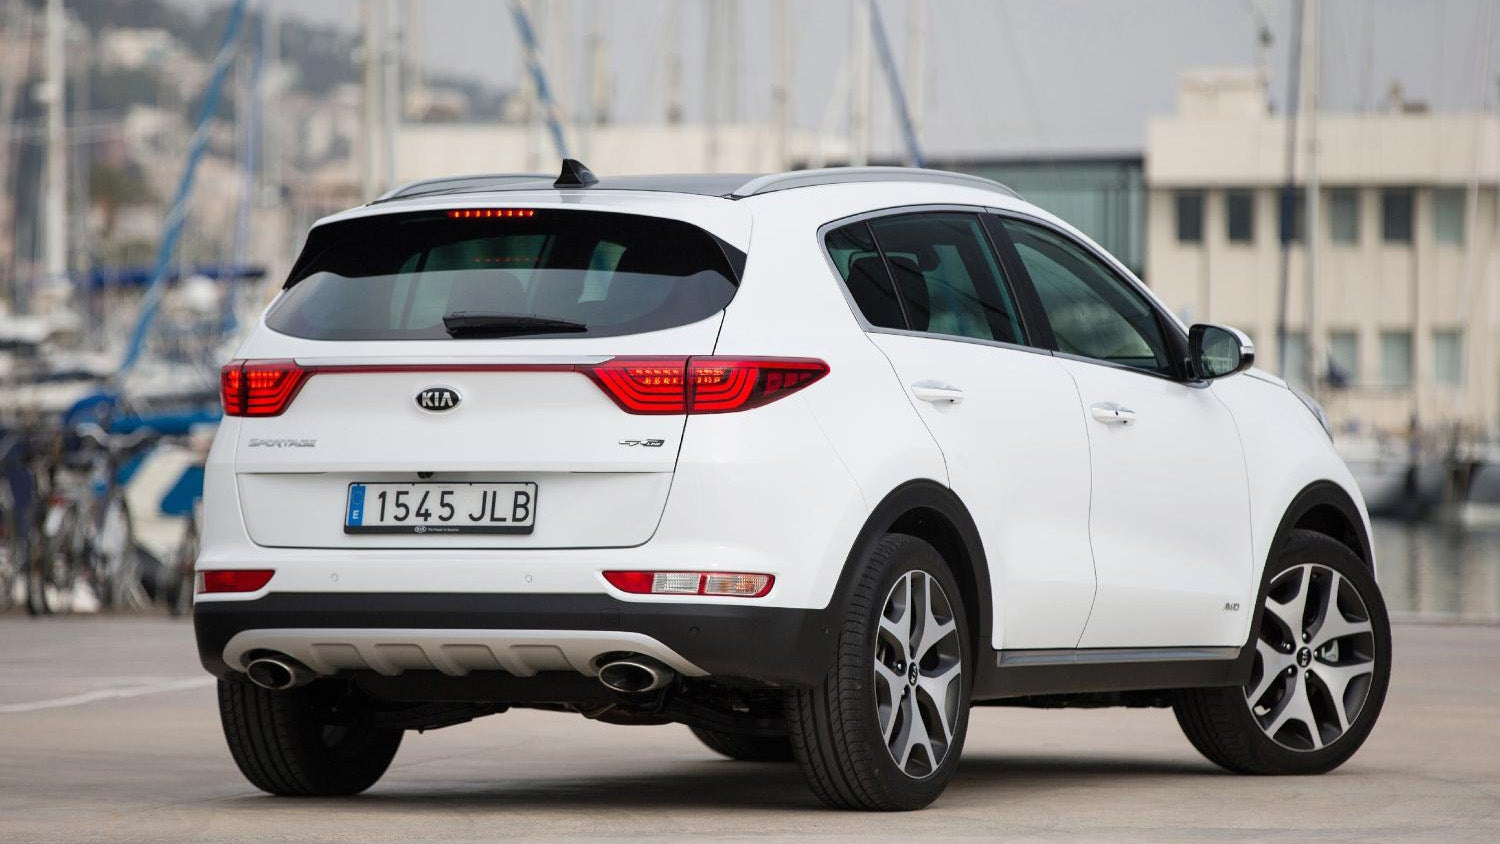 Kia Sportage Review Trusted Reviews